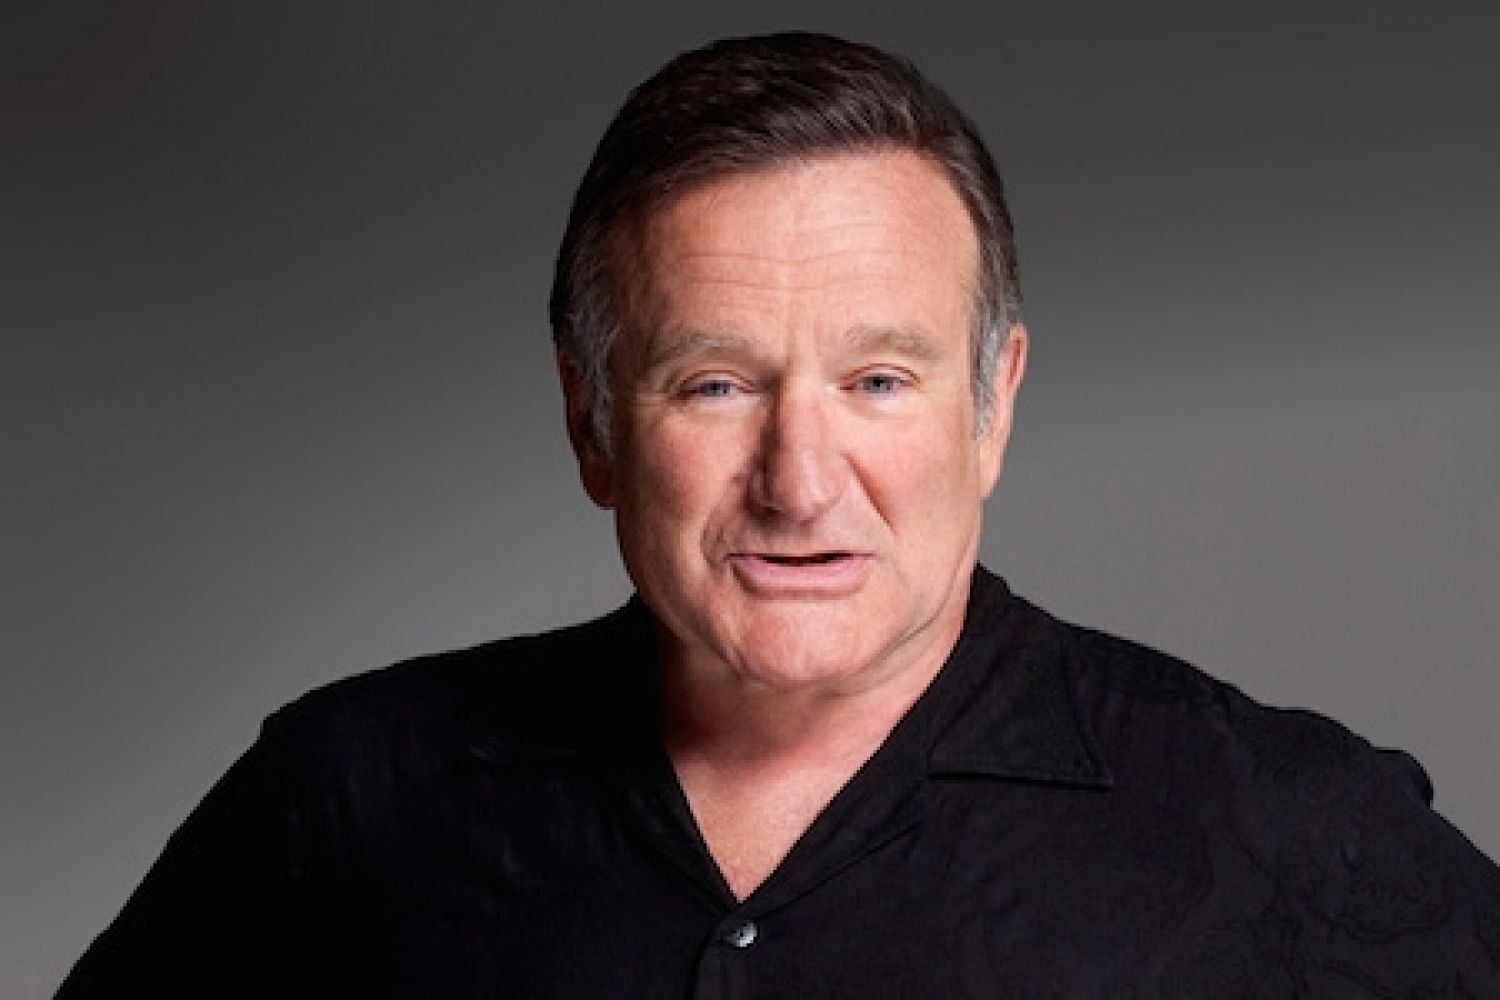 Robin Williams's Comedic Genius Was Not a Result of Mental Illness, but His Suicide Was